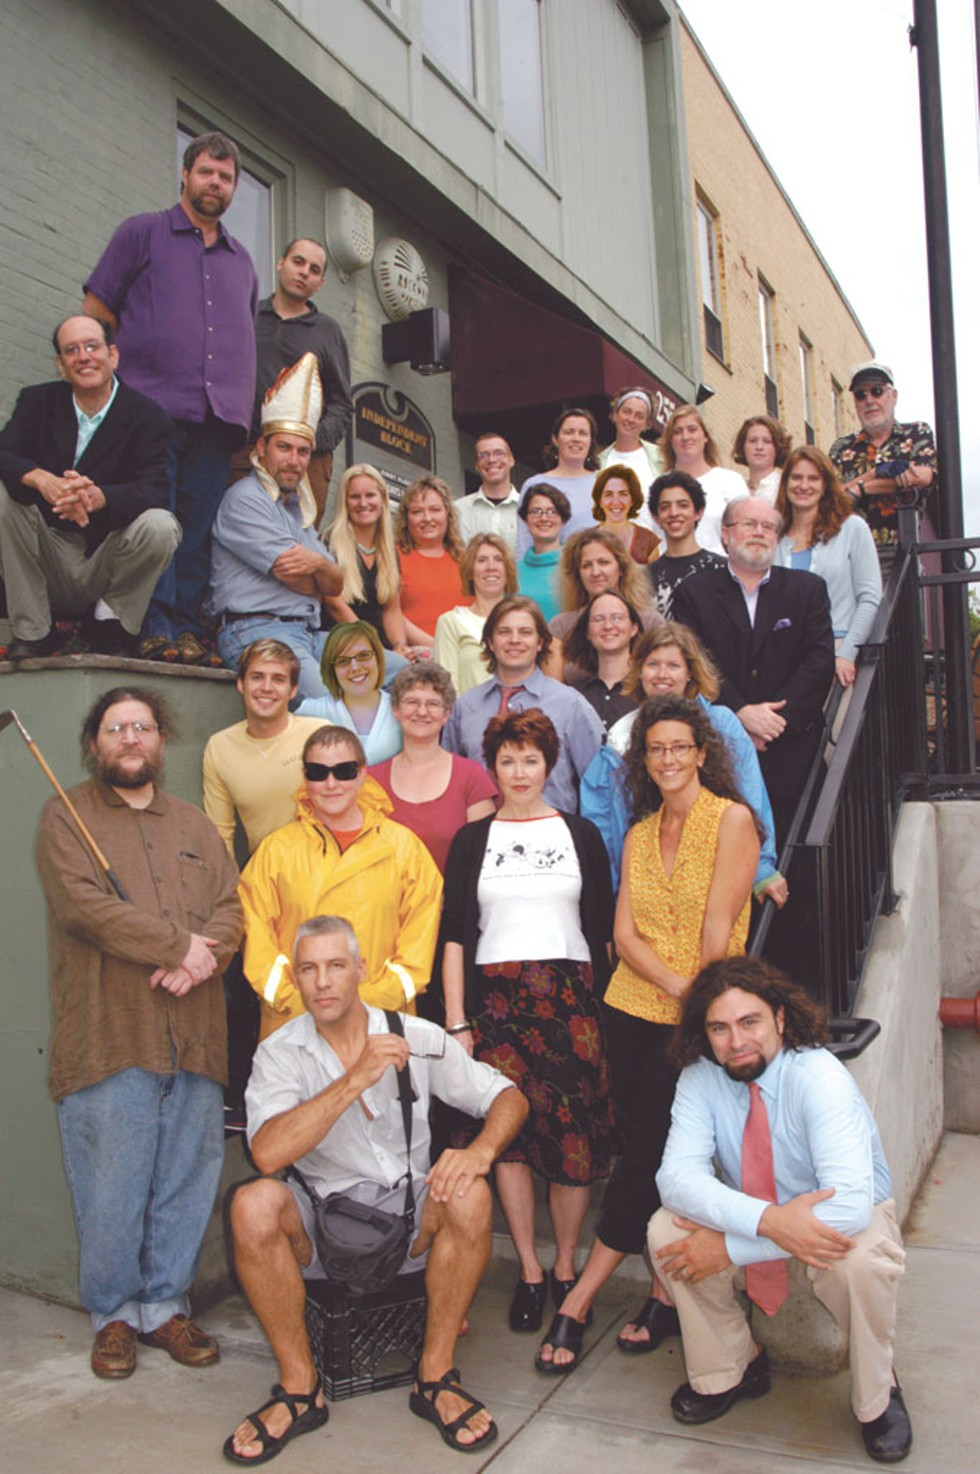 ON THE STEPS: IN FRONT: Matthew Thorsen, Colby Roberts. - FIRST ROW: Marc Awodey, Diane Sullivan, Pamela Polston, Paula Routly. - SECOND ROW: Don Eggert, Allison Davis, Ruth Horowitz, Michael Bradshaw, Cathy Resmer, Katherine Reilly-Fitz Patrick. - THIRD ROW: Michelle Brown, Leslie O'Halloran, Rick Kisonak. - FOURTH ROW: Elisabeth Crean, Meghan Dewald, Joanna May, Sam Horowitz, Sarah Potter. - TOP ROW: Jonathan Bruce, Judy Beaulac, Krystal Woodward, Robyn Birgisson, Priscilla Steenec, Peter Freyne. - ON THE LEDGE, STANDING: Rick Woods, Casey Rea. SITTING: Jernigan Pontiac, Ken Picard, Sarah Tuff. - NOT PICTURED: Columnists Peter Kurth, Margot Harrison, Susan Green and Judith Levine; photographers Jordan Silverman, Andy Duback, Jay Ericson and Jeb Wallace-Brodeur; our freelance illustrators and cartoonists; and circulation team: Harry Appelgate, Christopher Billups, Rob Blevins, the Bouffards — David Jr., David Sr., Joe and Pat — Steve Hadeka, Abram Harrison, Justin Hart, Nick Kirshnit, Jack Lutz, Nat Michael and Bill Stone. - PHOTO: Matthew Thorsen.